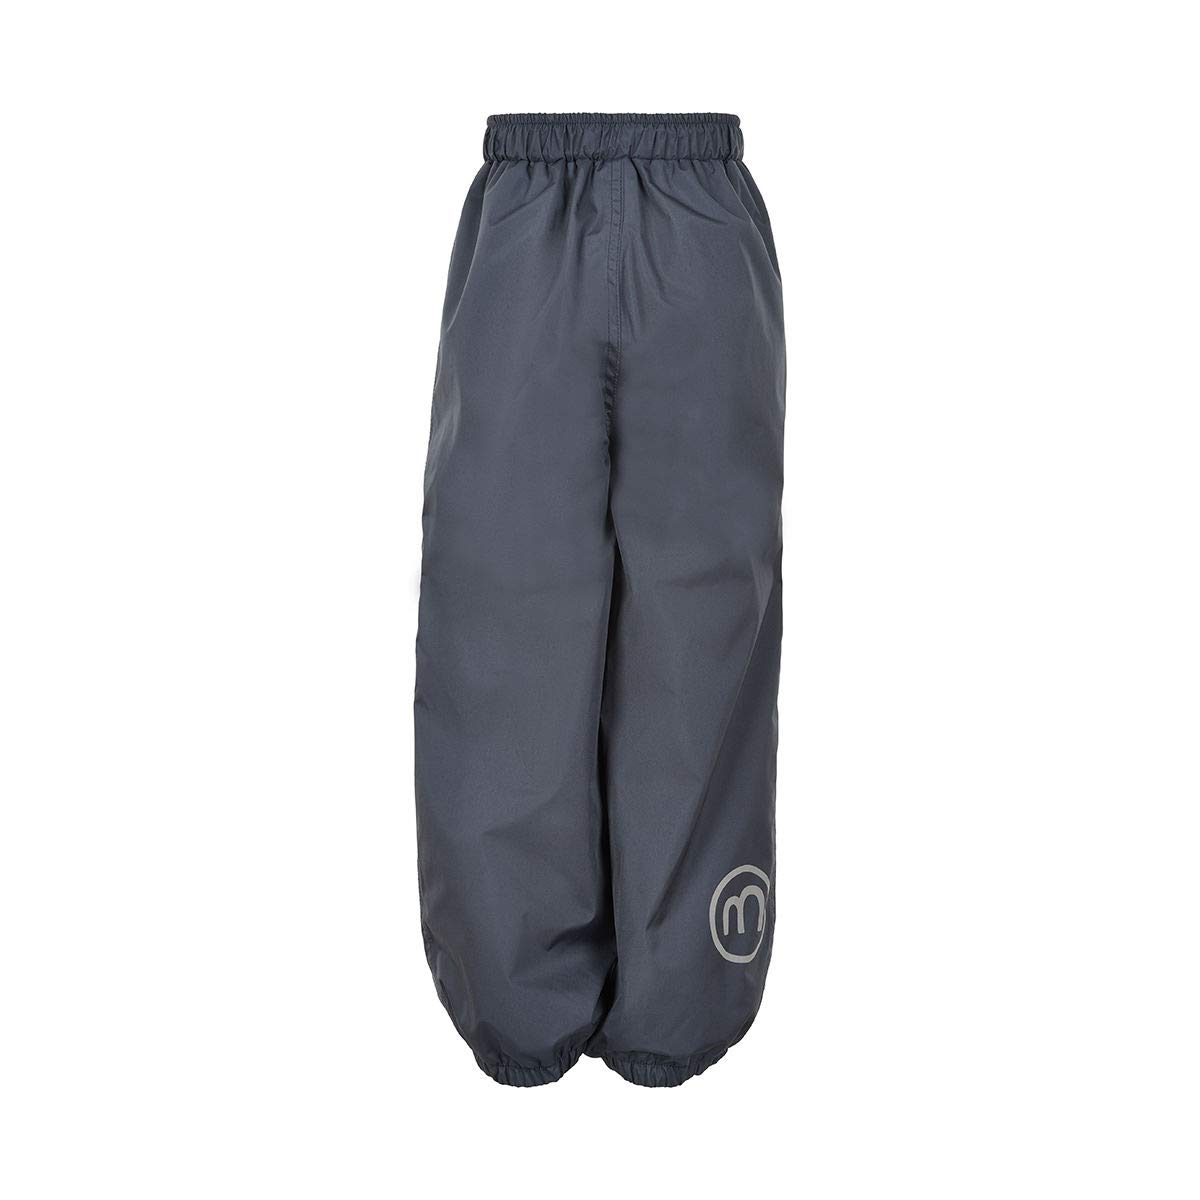 Minymo Boy's Basic 23 -Rain Pants -Solid Plain Rain Trousers 3623